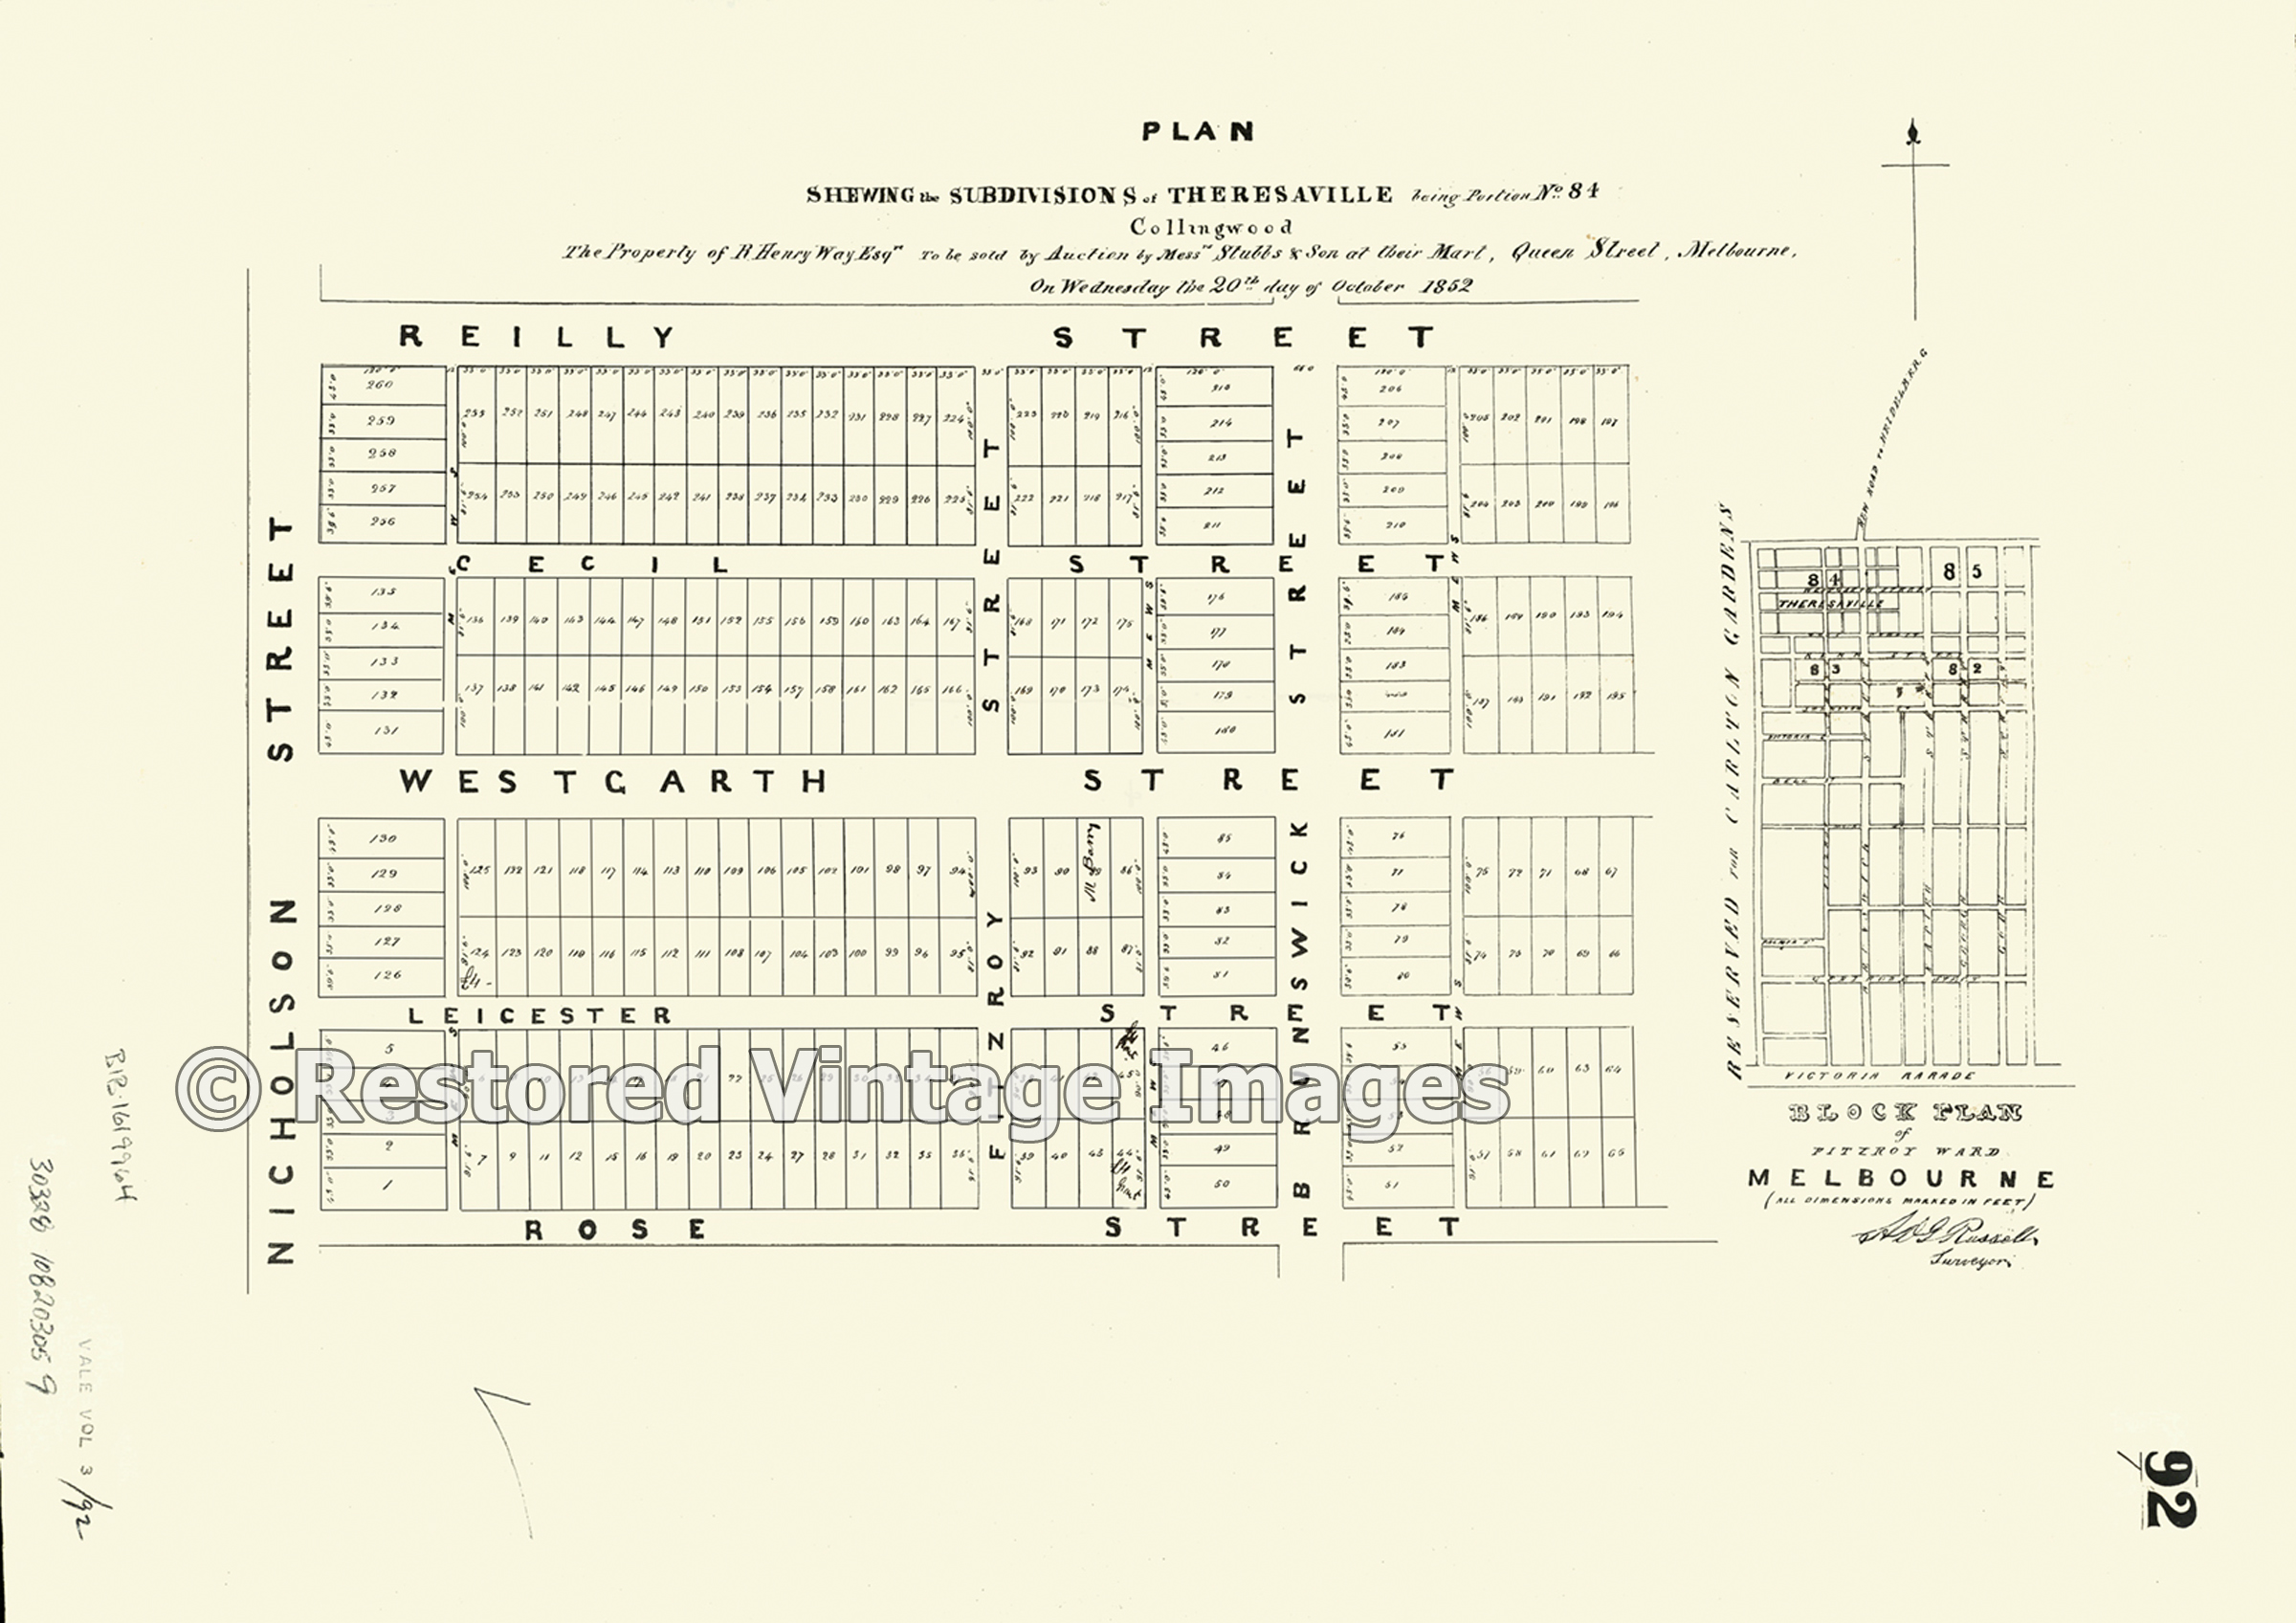 Subdivision Of Theresaville Collingwood 1852 – Fitzroy